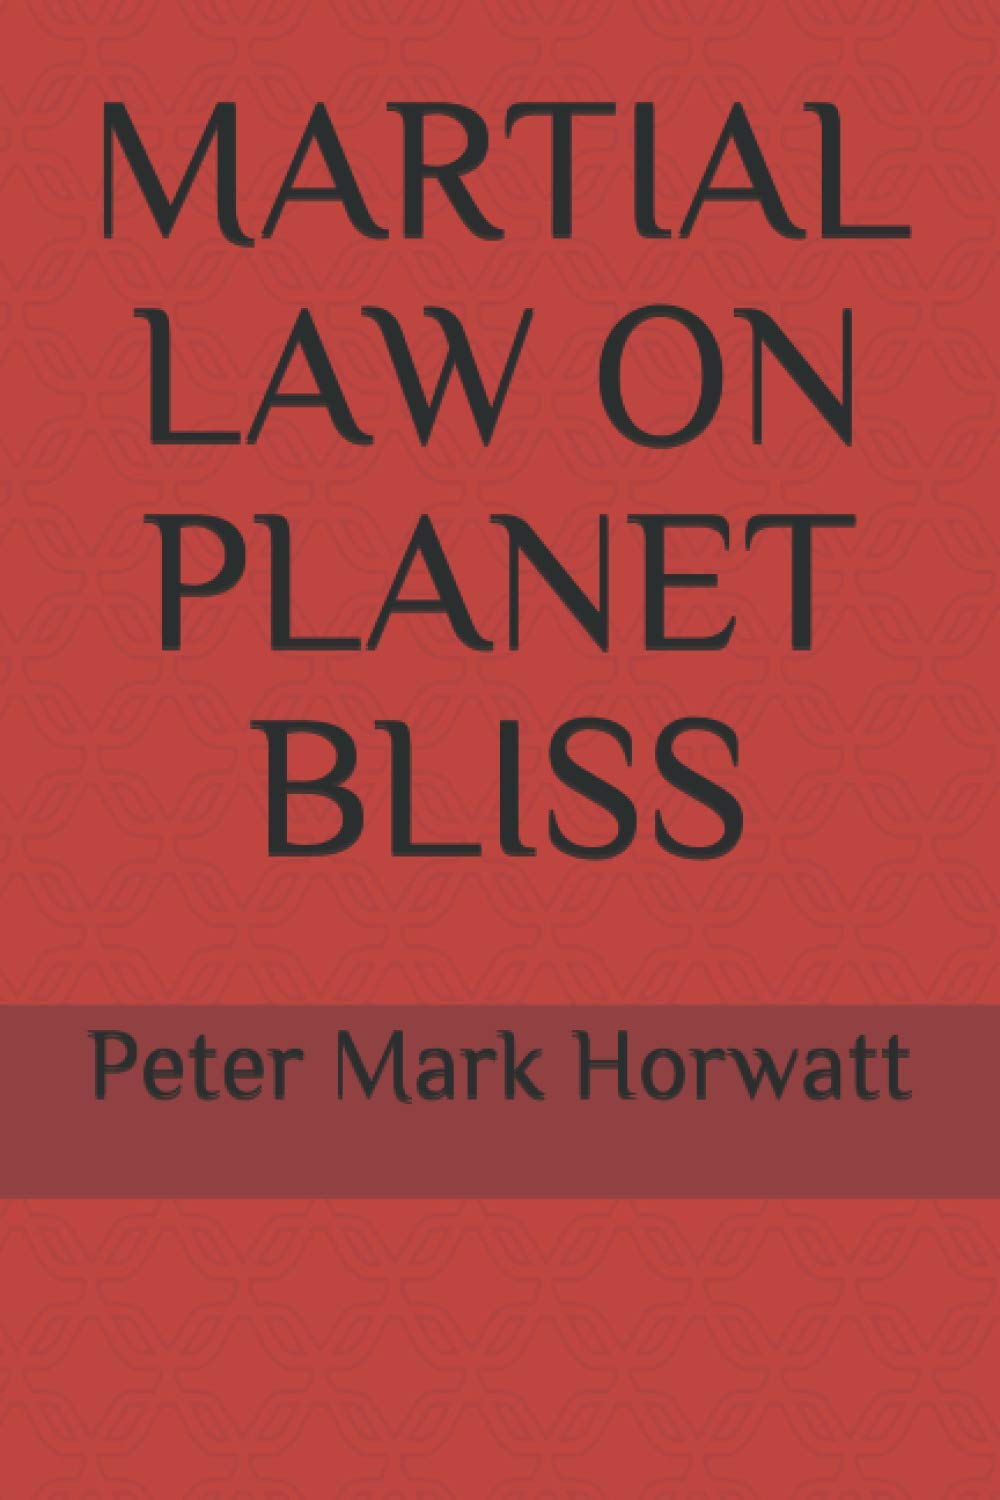 MARTIAL LAW ON PLANET BLISS